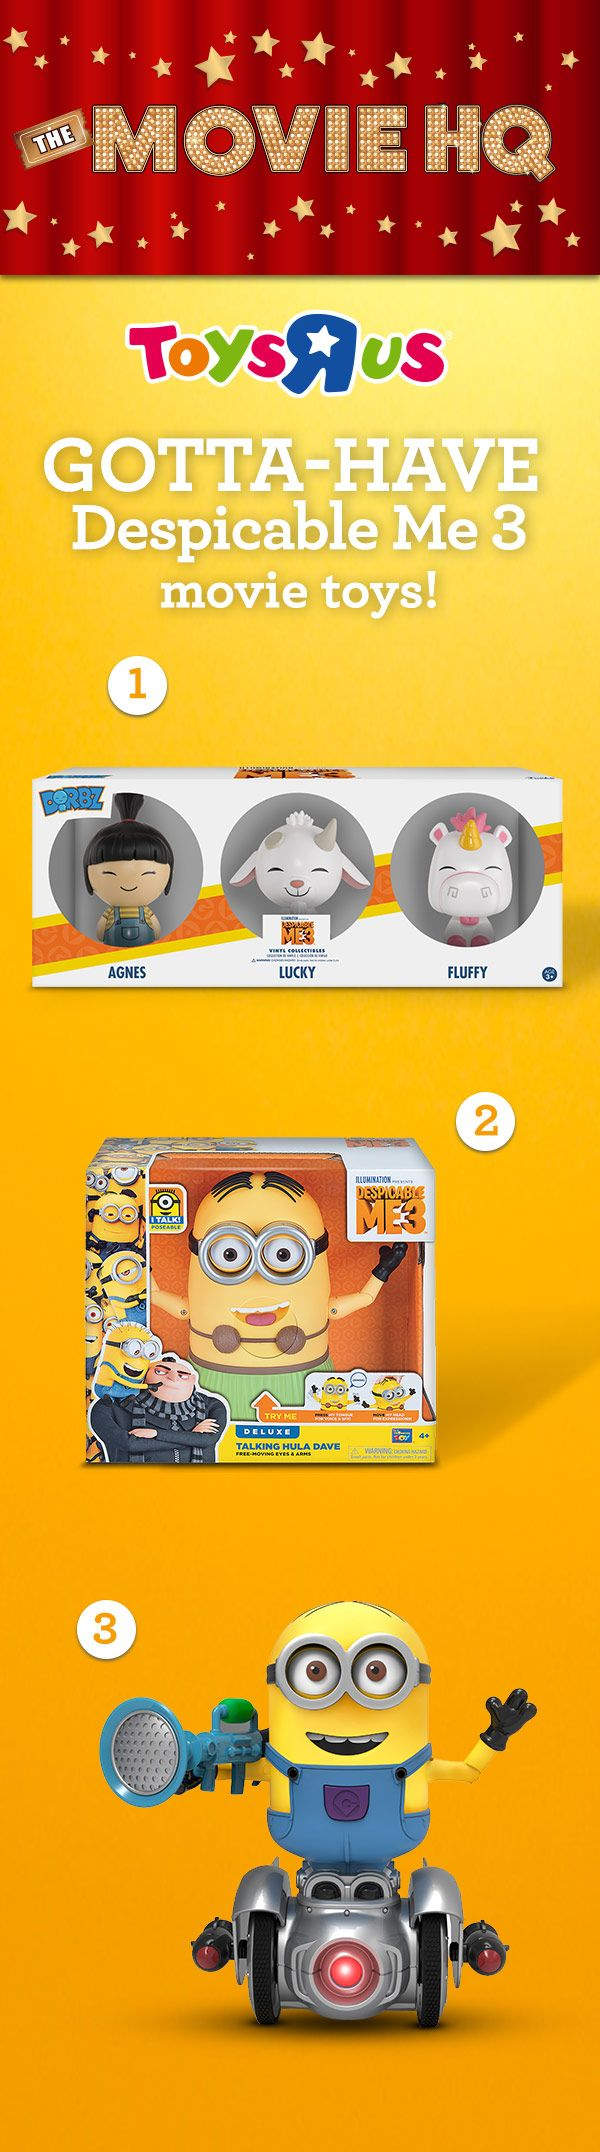 "Toys""R""Us has tons of awesome awfulness for Despicable Me fans! Whether it's [1] an exclusive trio of figures featuring adorable  Agnes and her cuddly creatures, [2] a coconut- clad, hula-dancing, talking Dave or [3] the Turbo Dave Self Balancing Robot, your very own codable, app-enabled, interactive minion— we've got the goods on being bad."